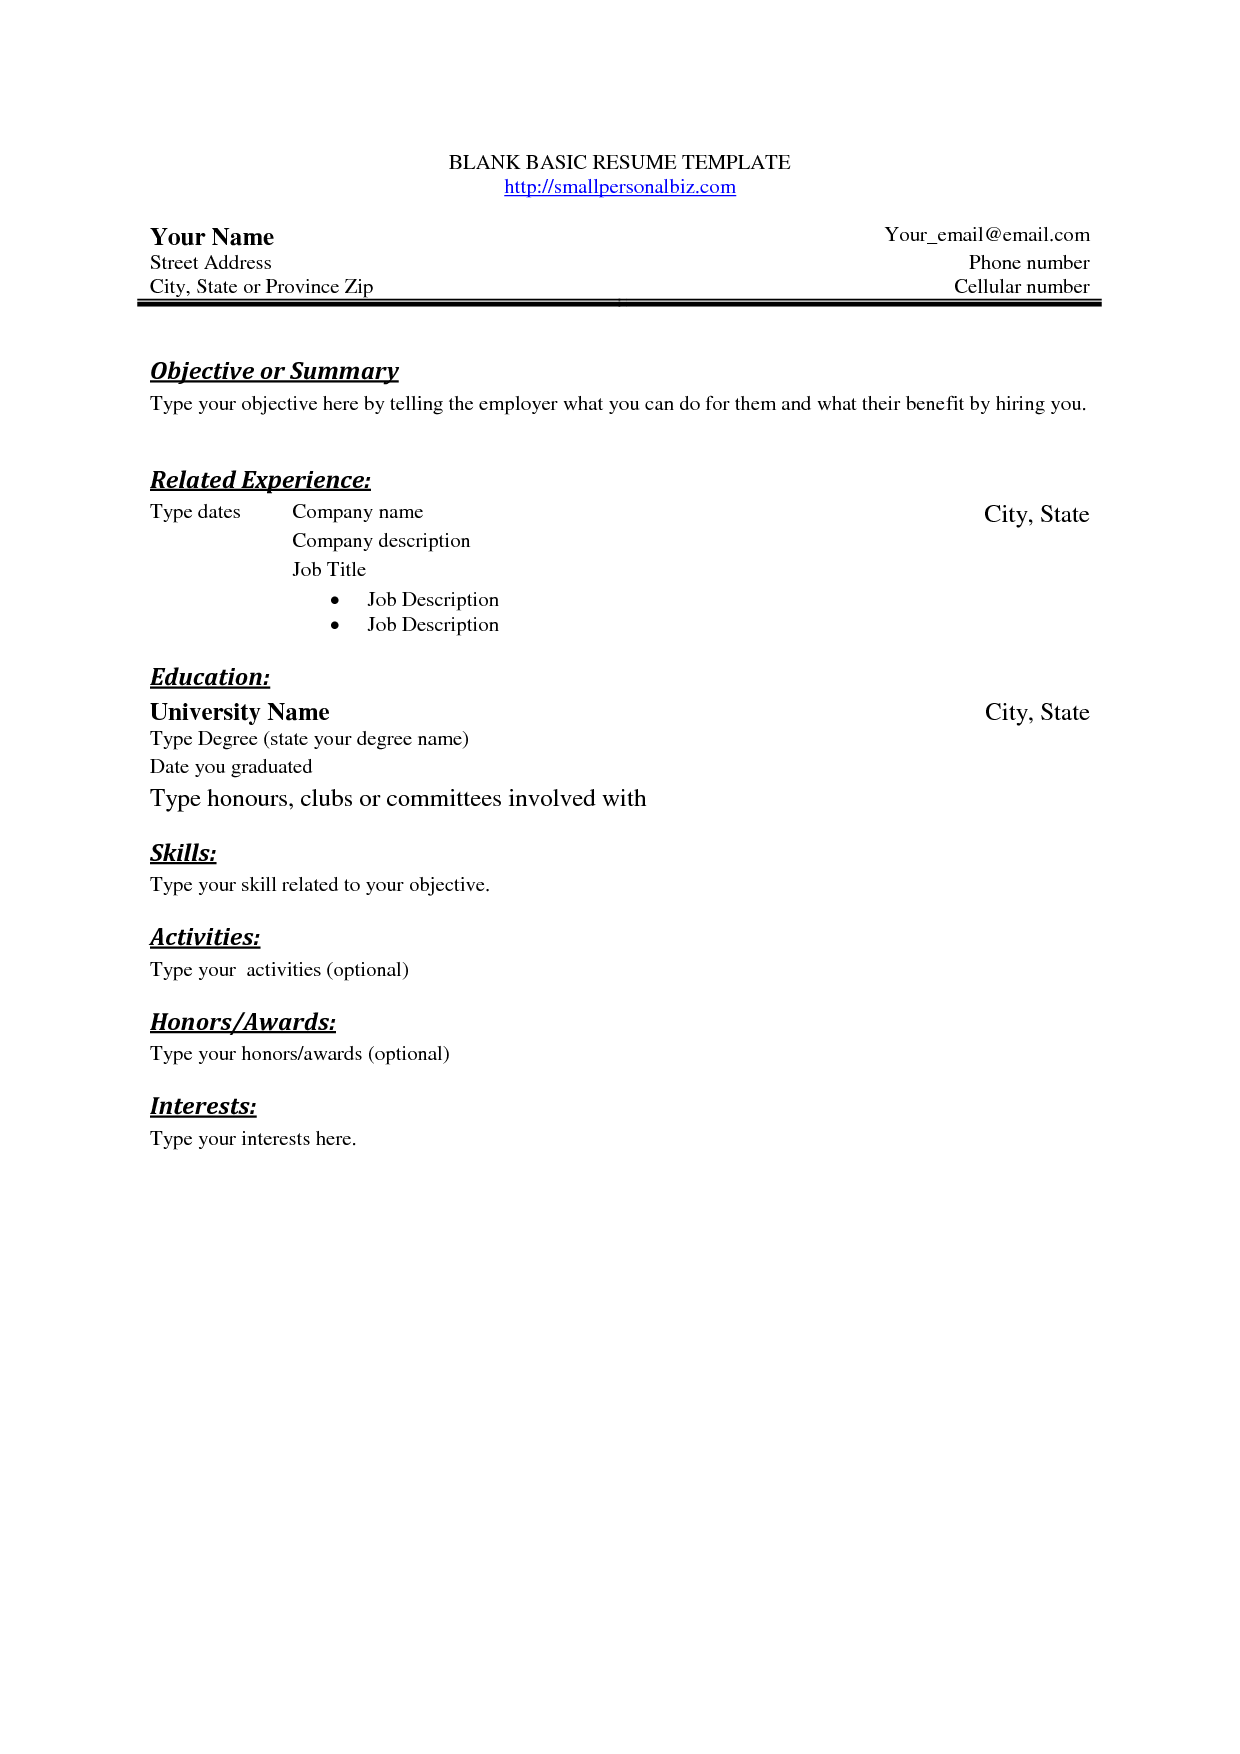 Free Example Resume Stylist And Luxury Simple Resume Layout 10 Free Basic Blank Resume